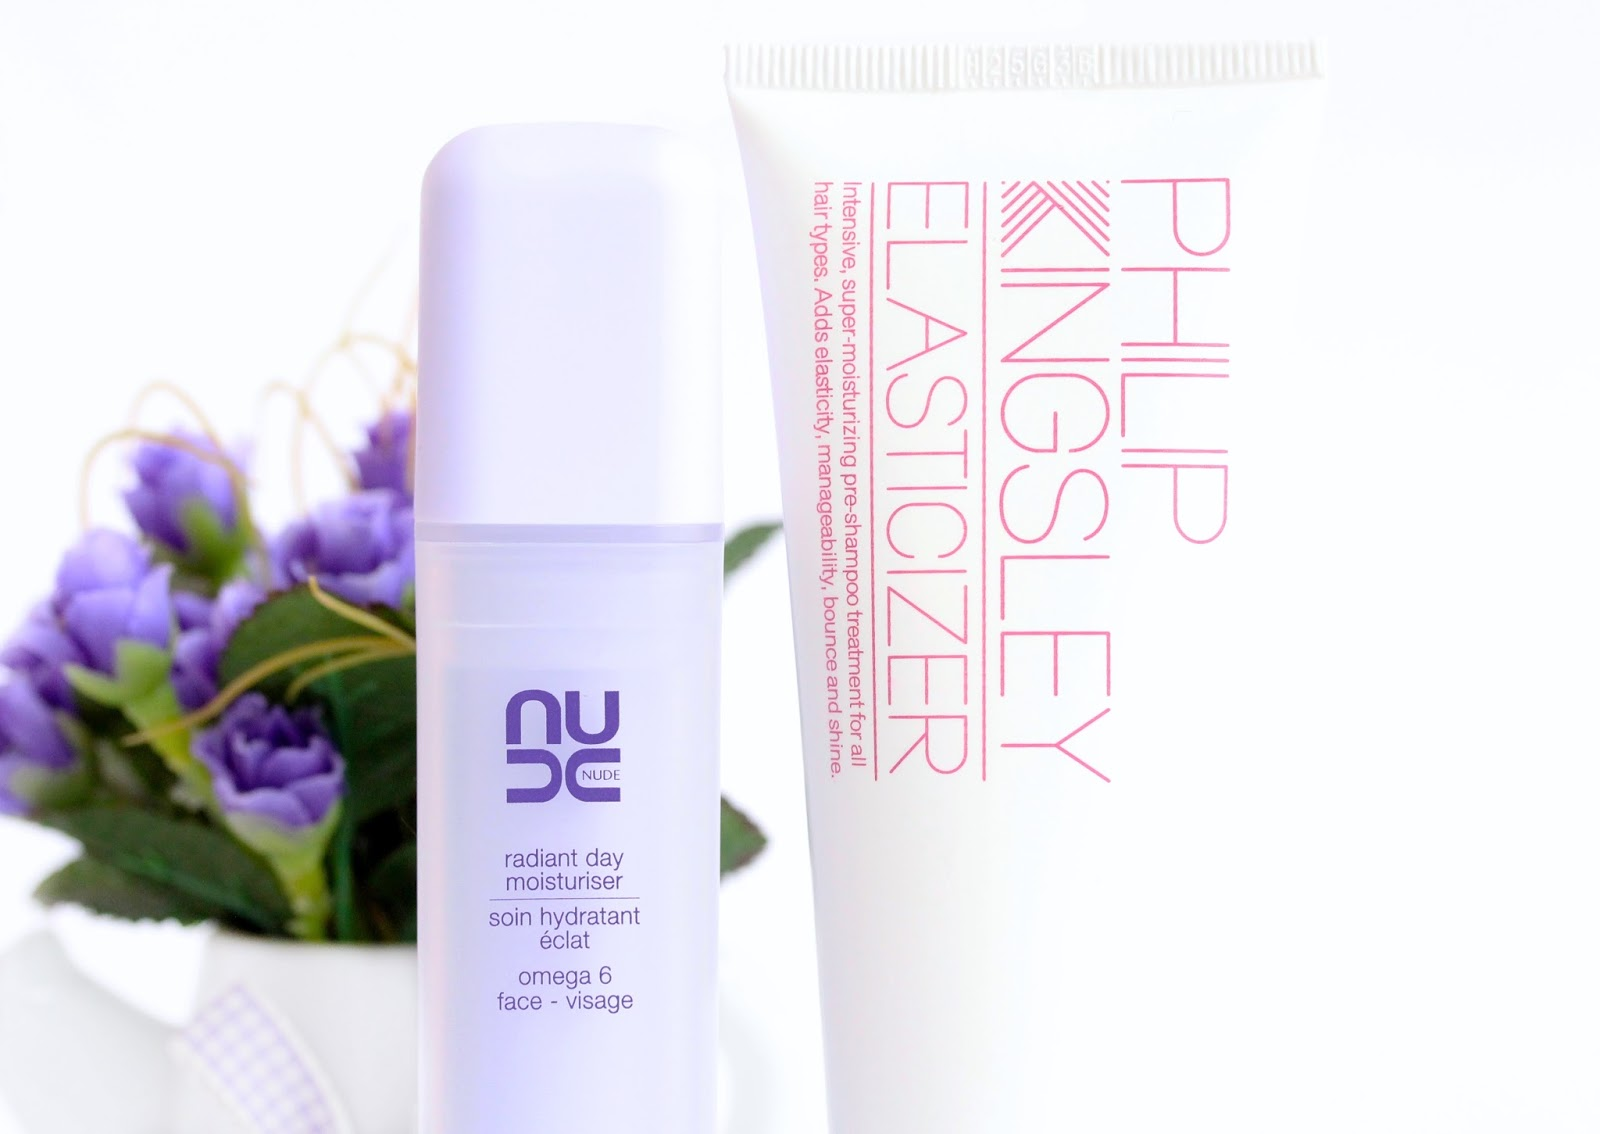 NUDE radiant day moisturizer and Philip Kingsley Elasticizer